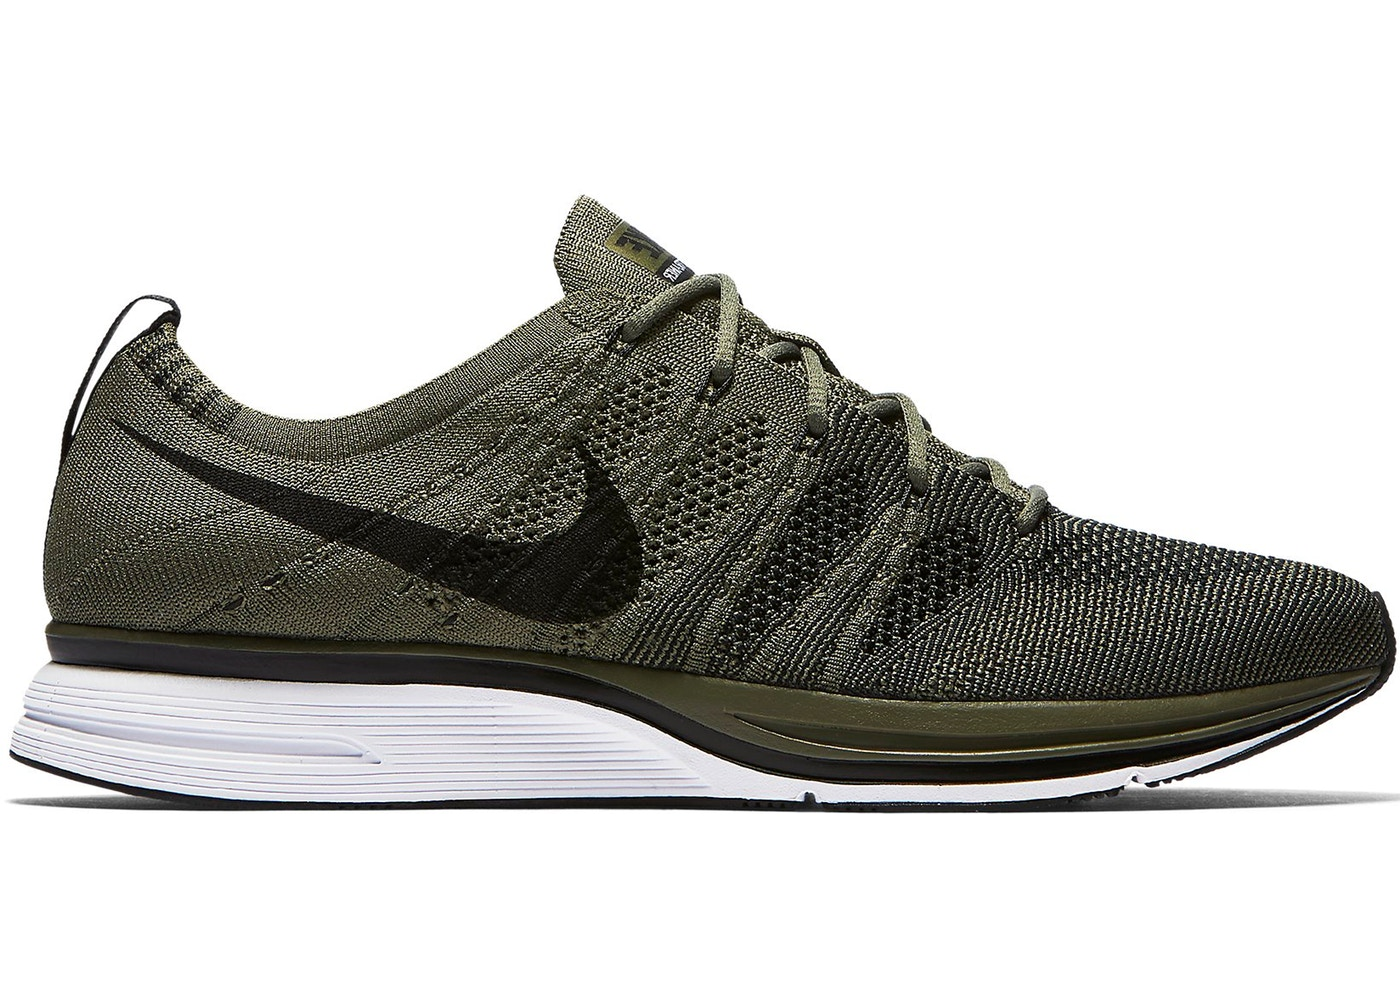 official photos 257ed 6aa6a Flyknit Trainer Medium Olive - AH8396-200